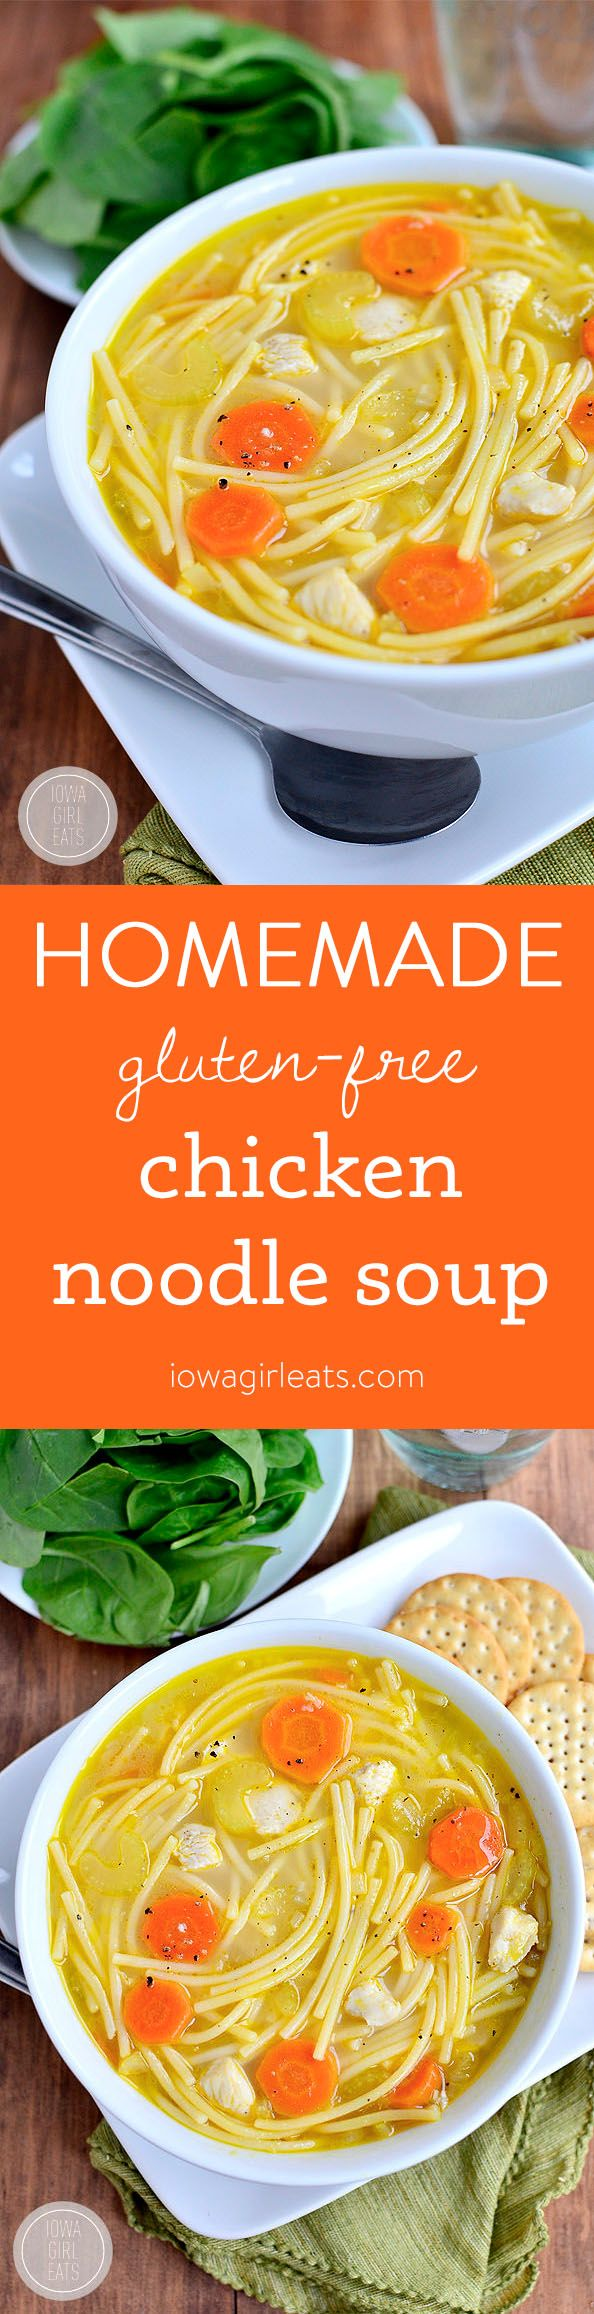 Gluten-free Homemade Chicken Noodle Soup is ready in under 30 minutes and made with fridge and pantry staples. The recipe has been in my family for generations! | iowagirleats.com